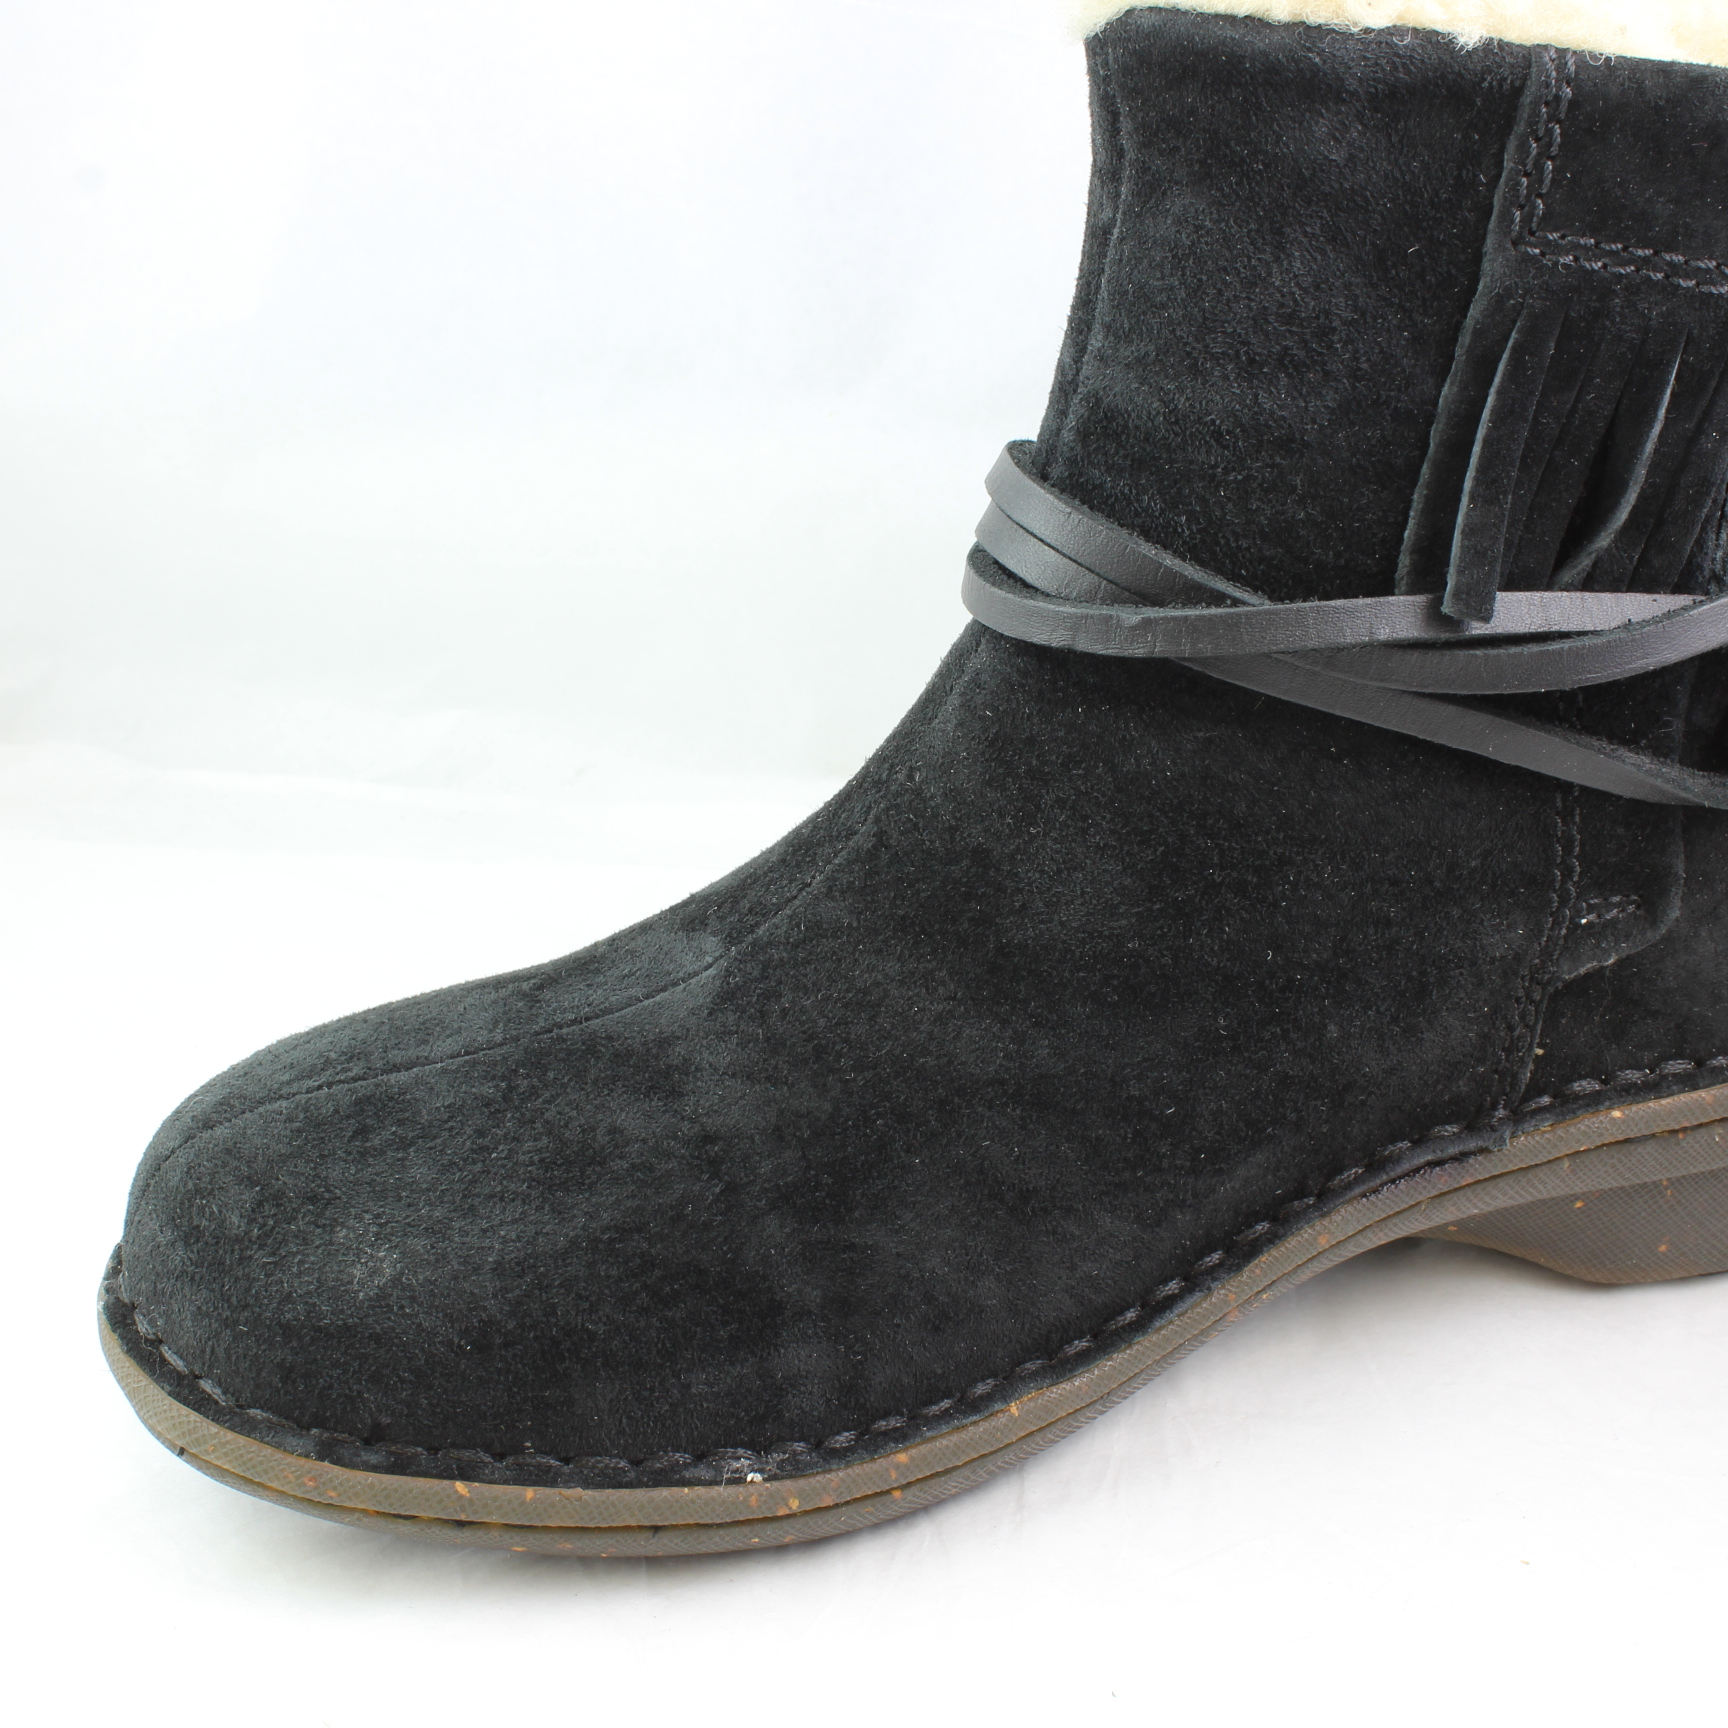 Clean Faded Black Suede Shoes